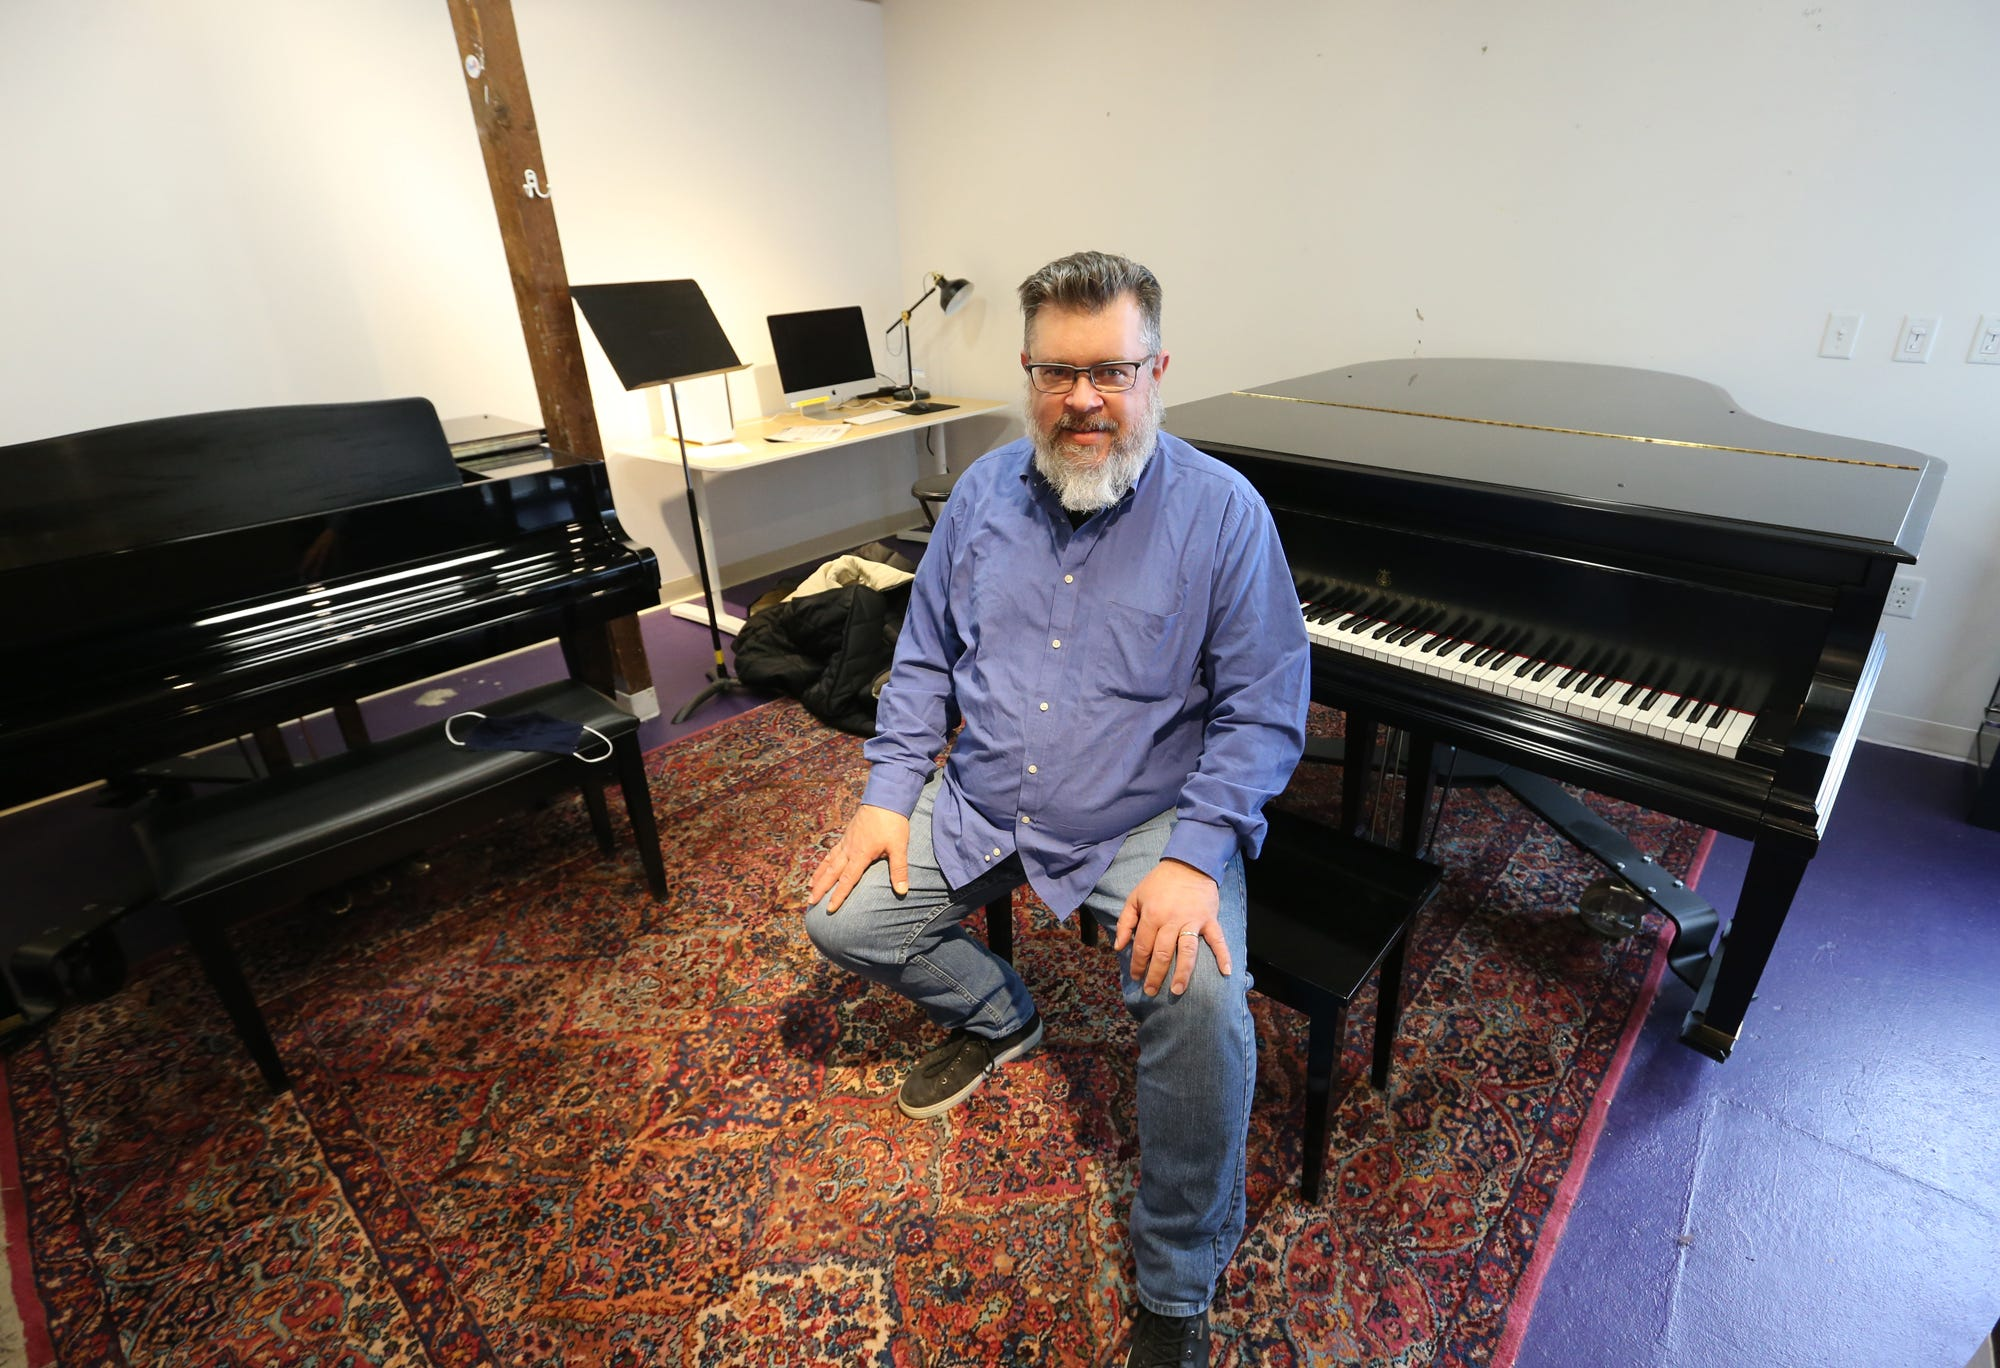 Russ Grazier, director of the New Horizons Band